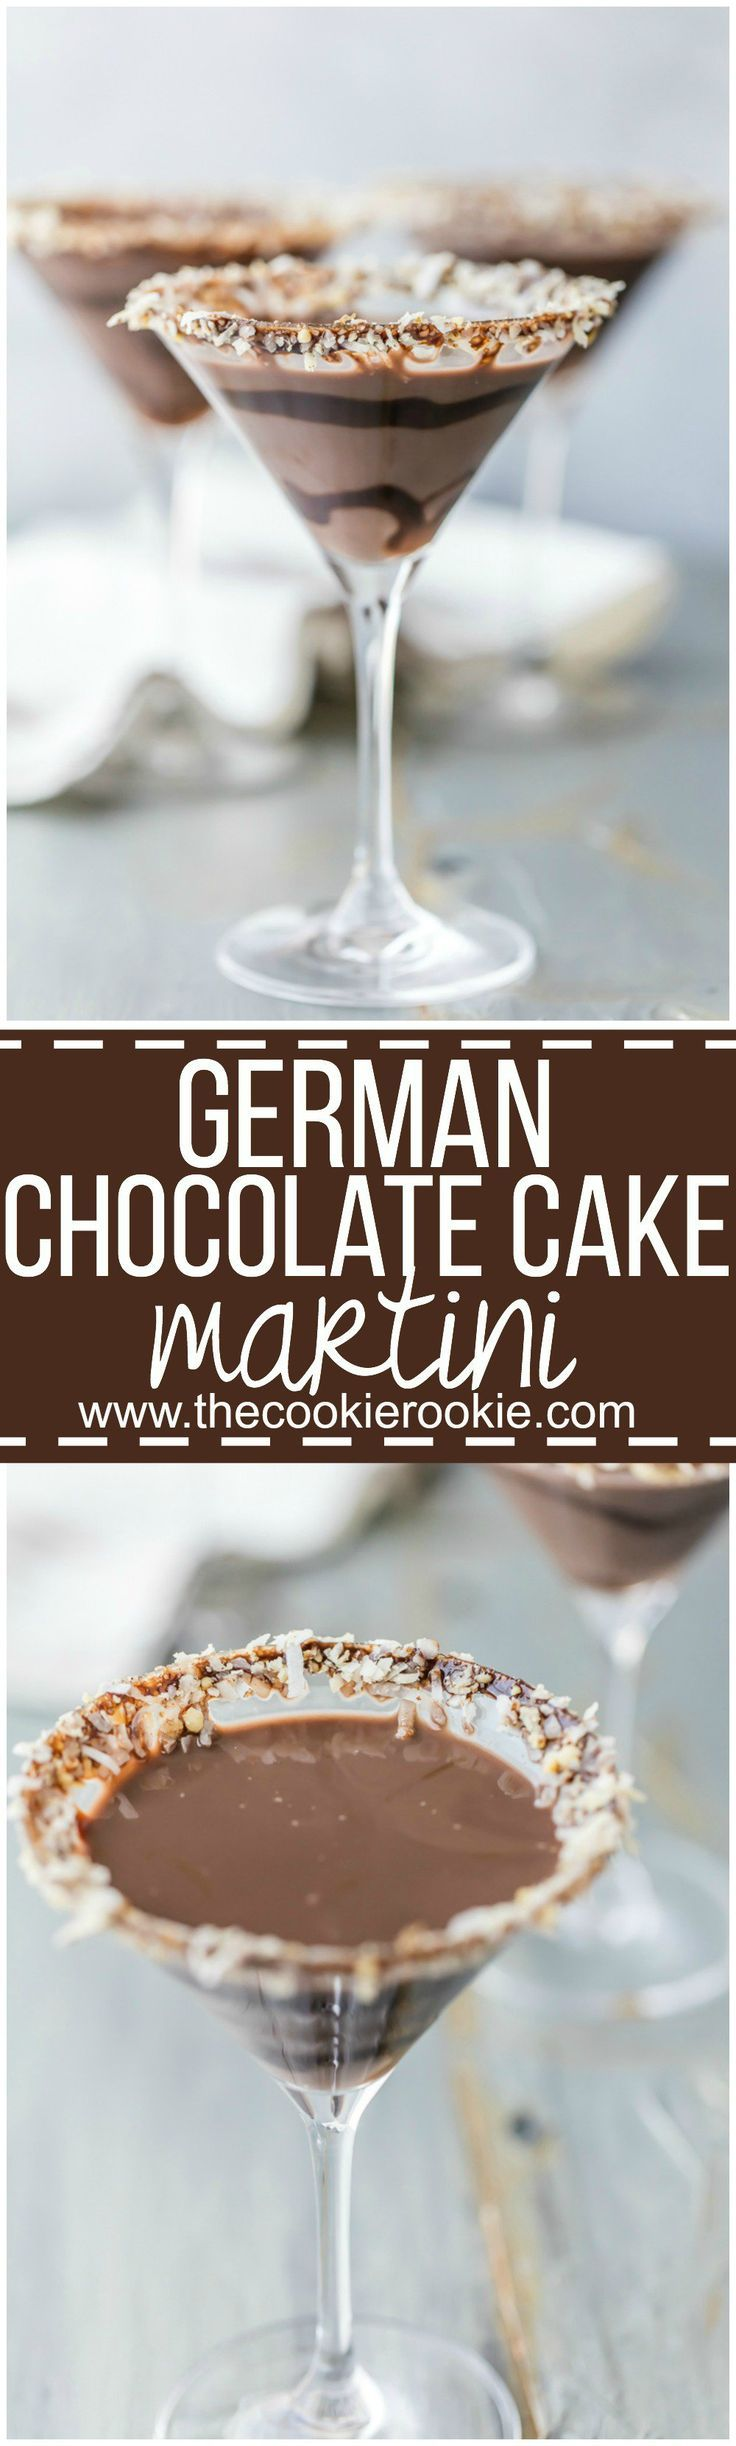 This German Chocolate Cake Martini is the perfect dessert cocktail! Tastes like you're taking a bite out of your favorite cake, in martini form! SO EASY and delicious!